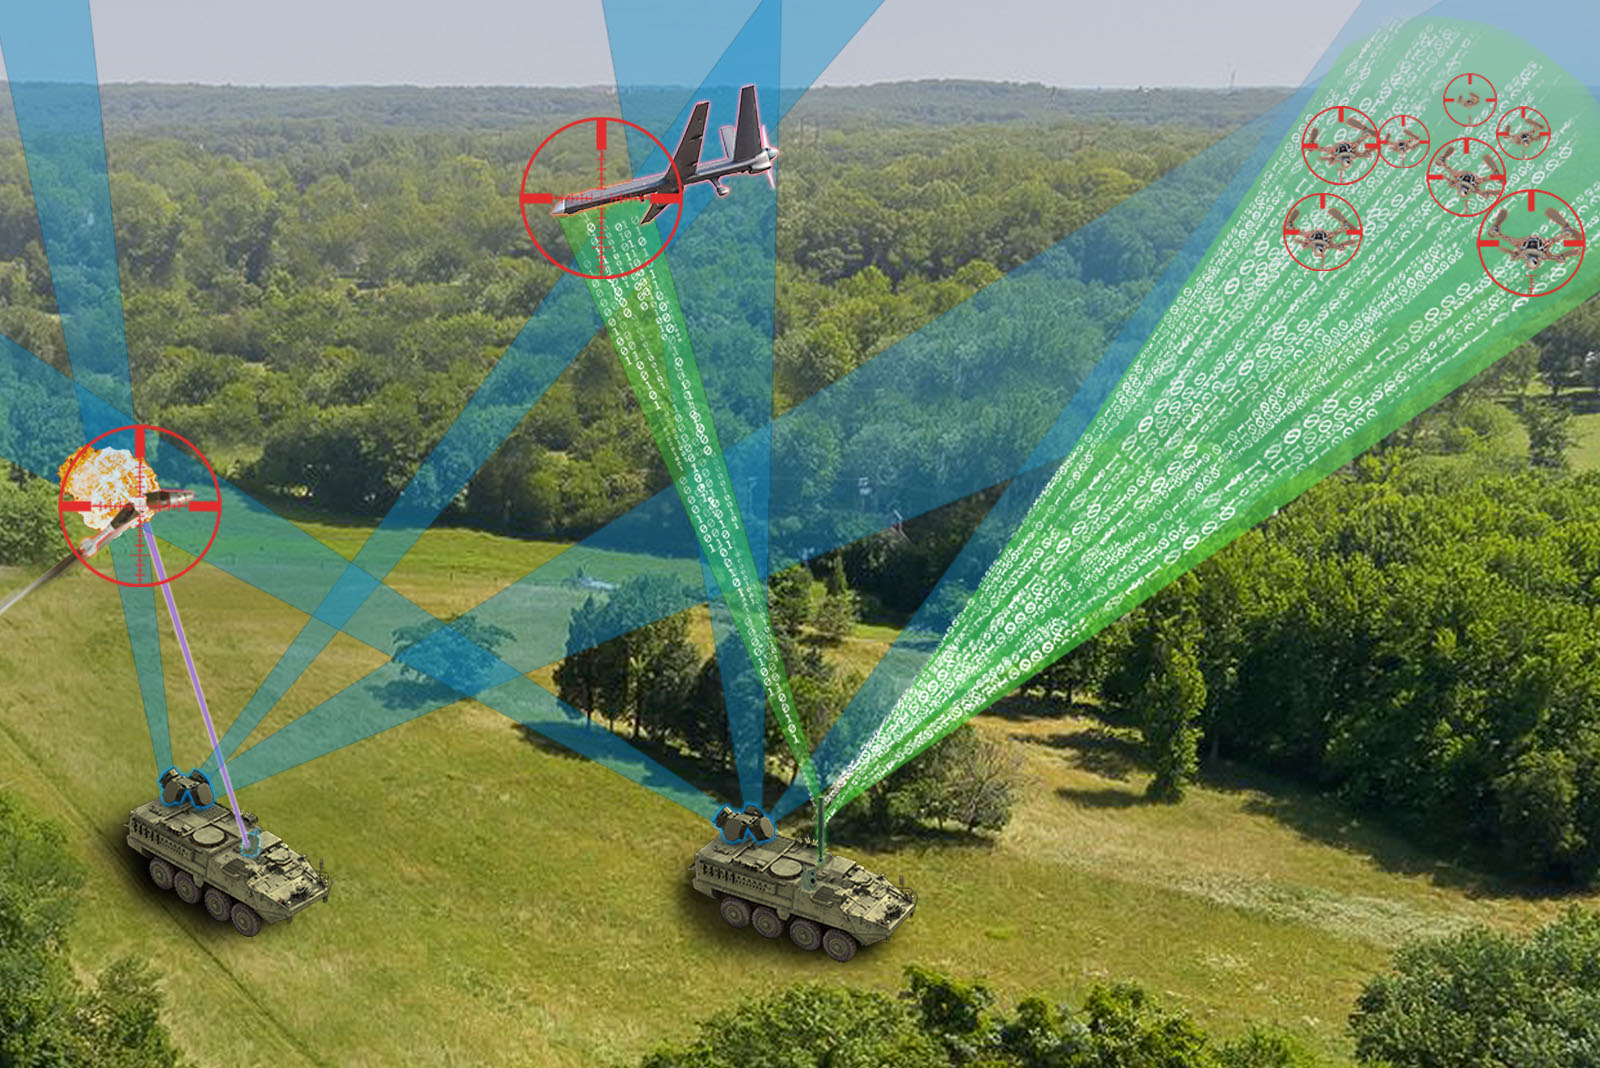 Silent Archer concept image with the Silent Archer technologies on two Stryker platforms detecting and defeating a group 3 UAS, a UAS swarm and an artillery munition threat in a forested area